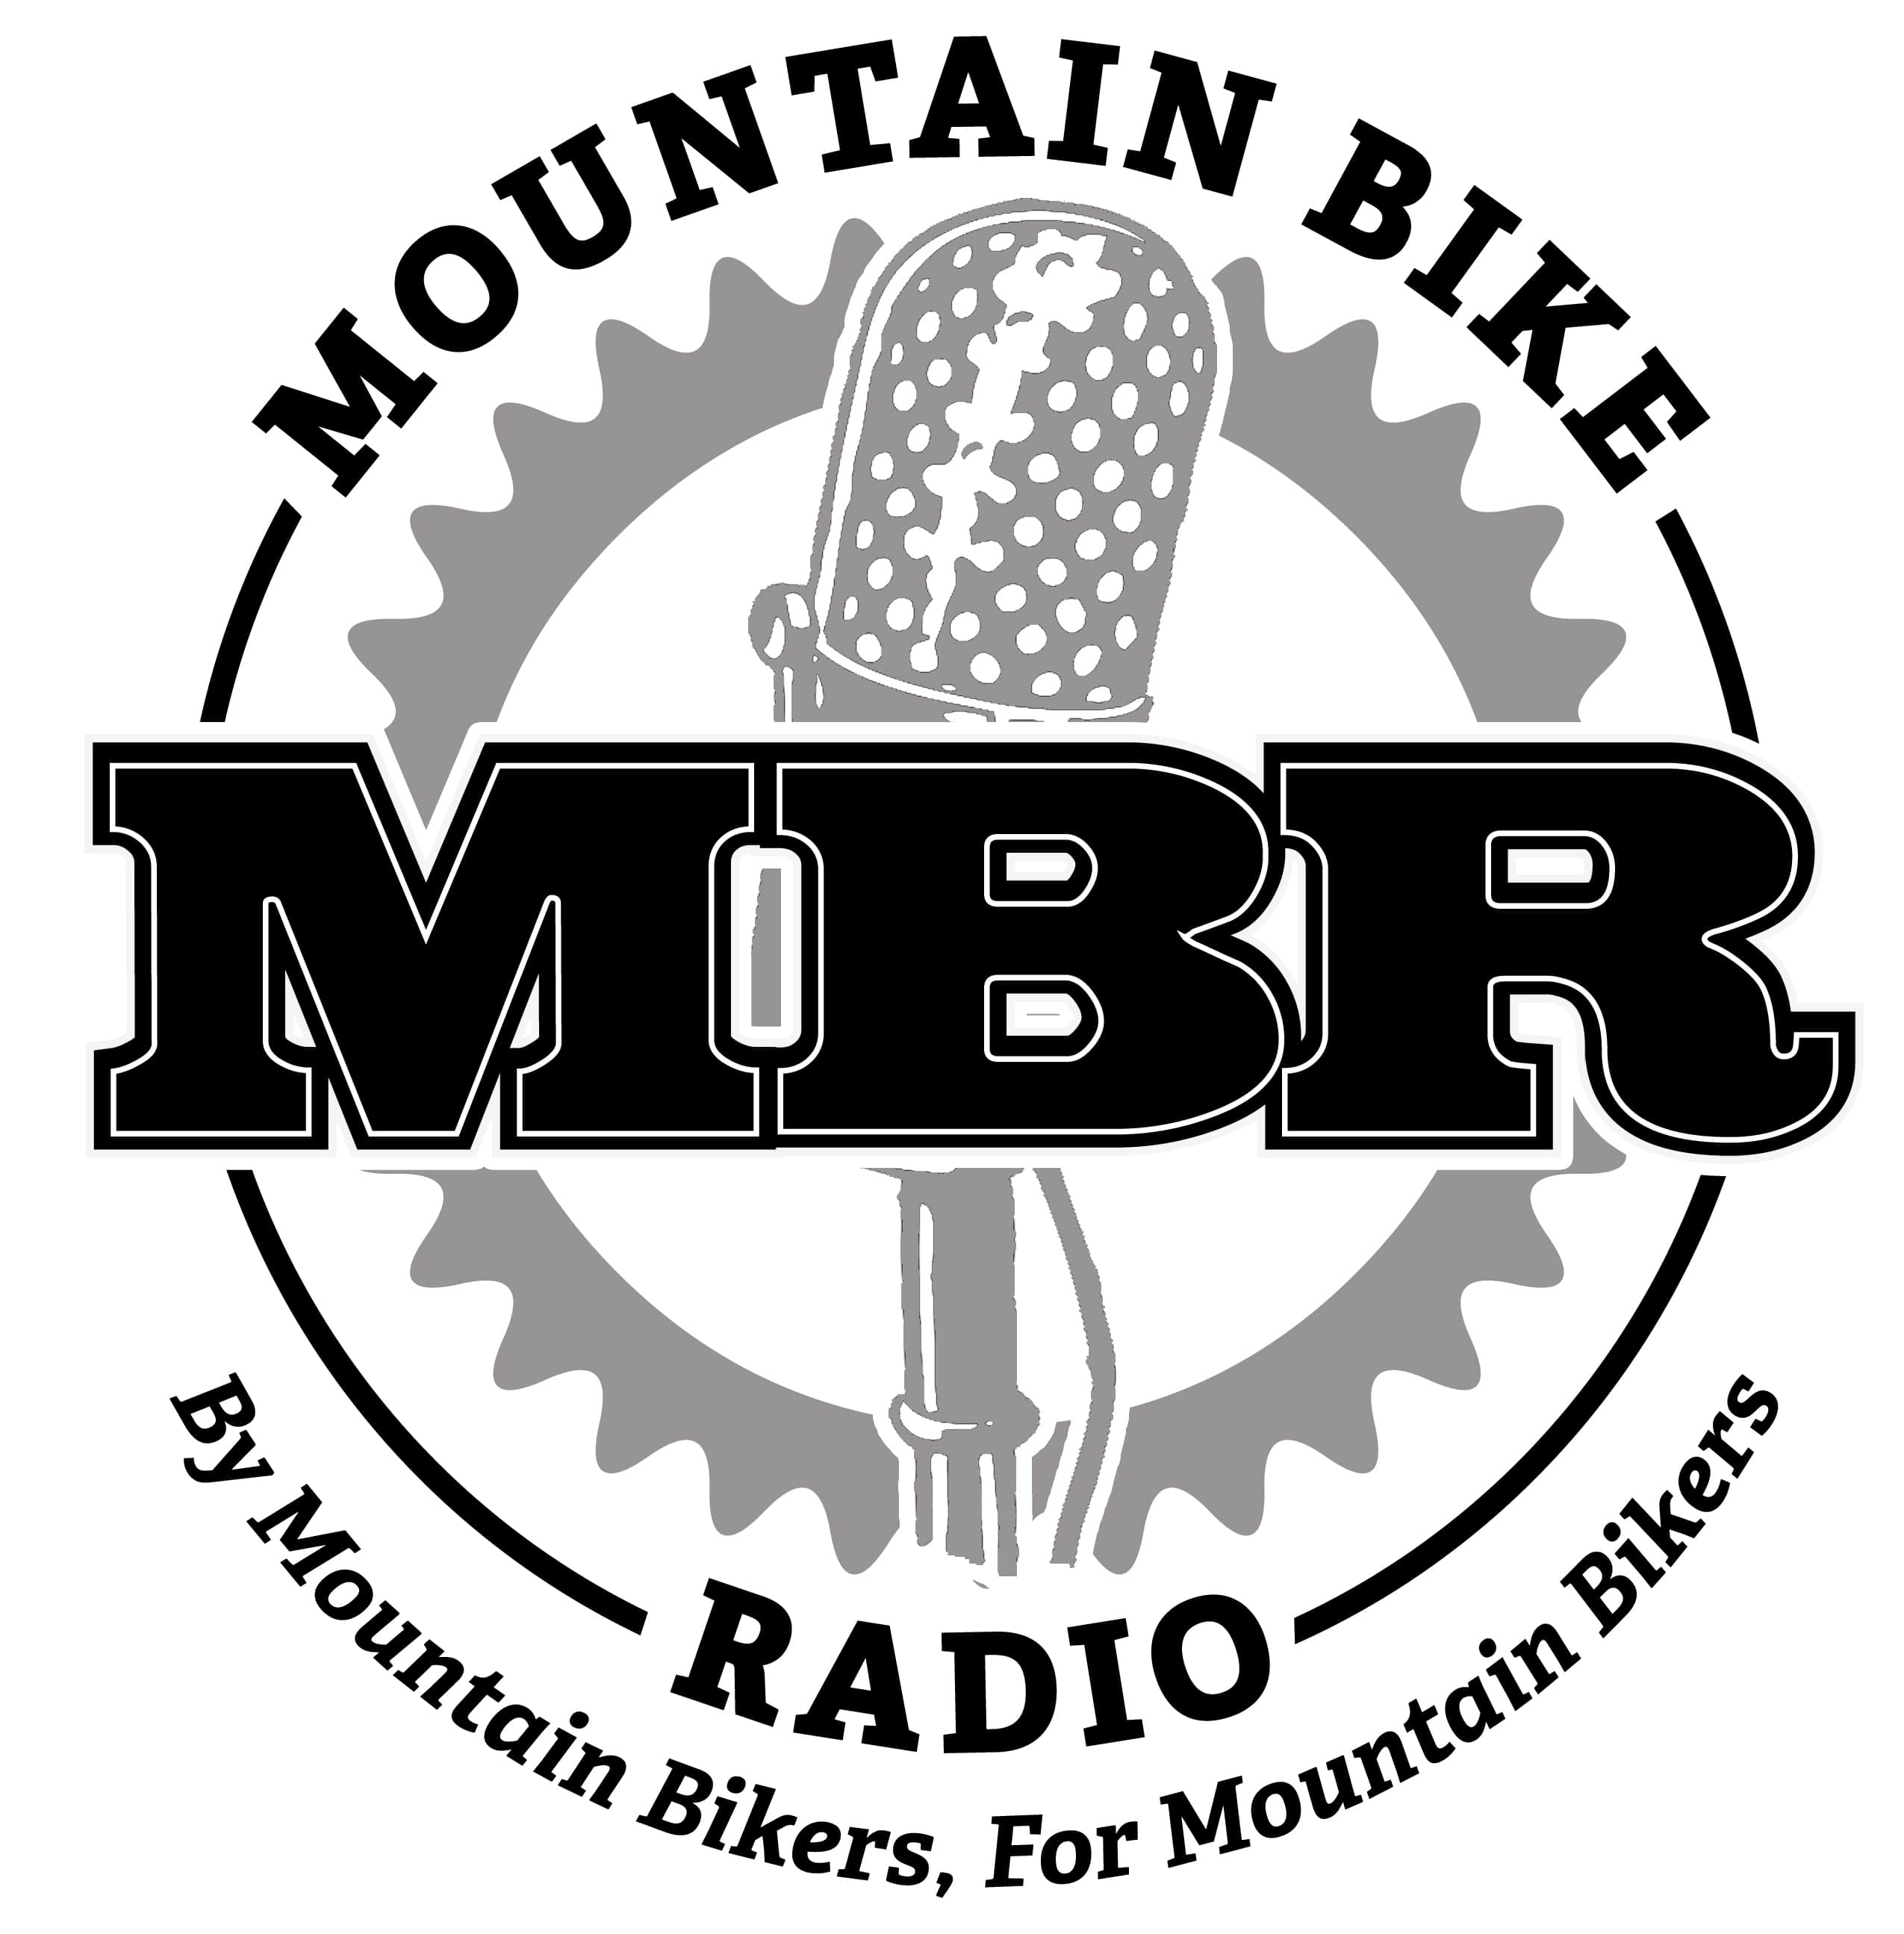 Mountain Bike Radio show art